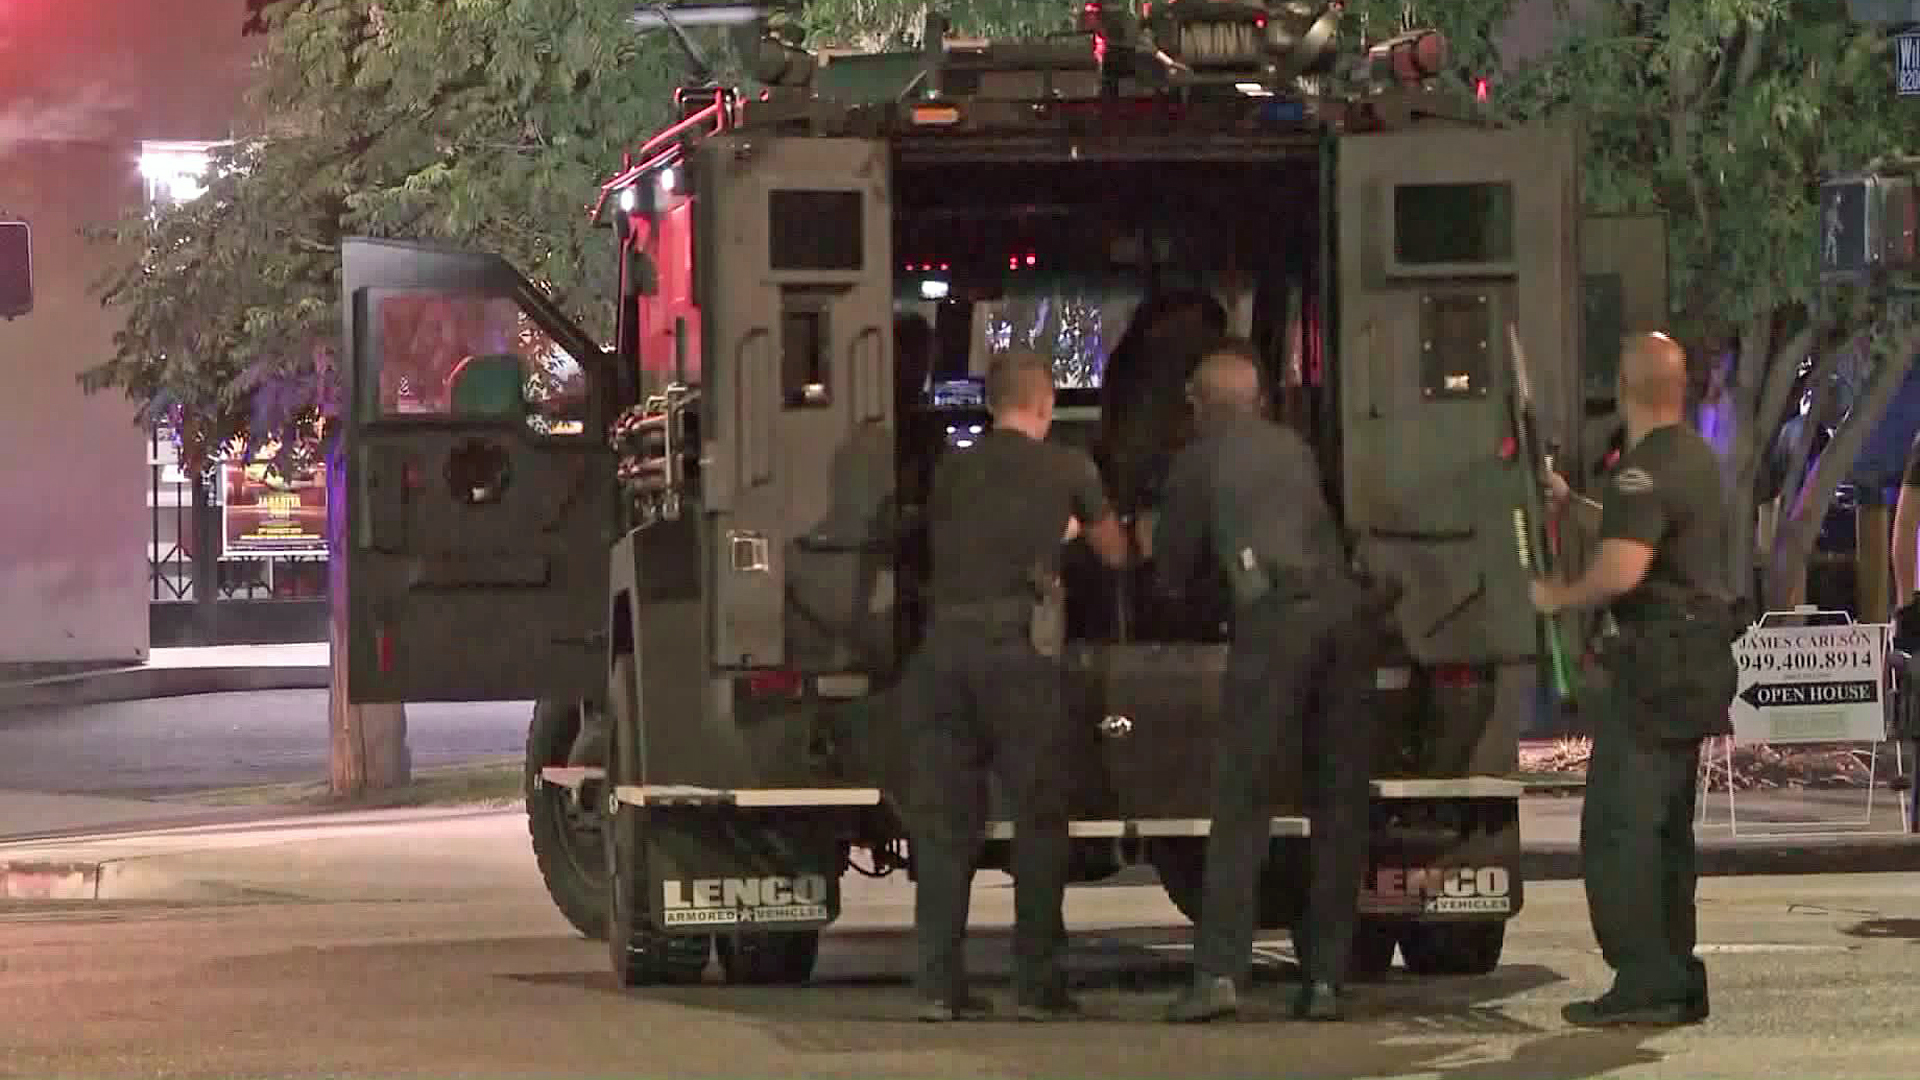 SWAT officers arrived to a barricade situation in Reseda on Aug. 28, 2019. (Credit: KTLA)